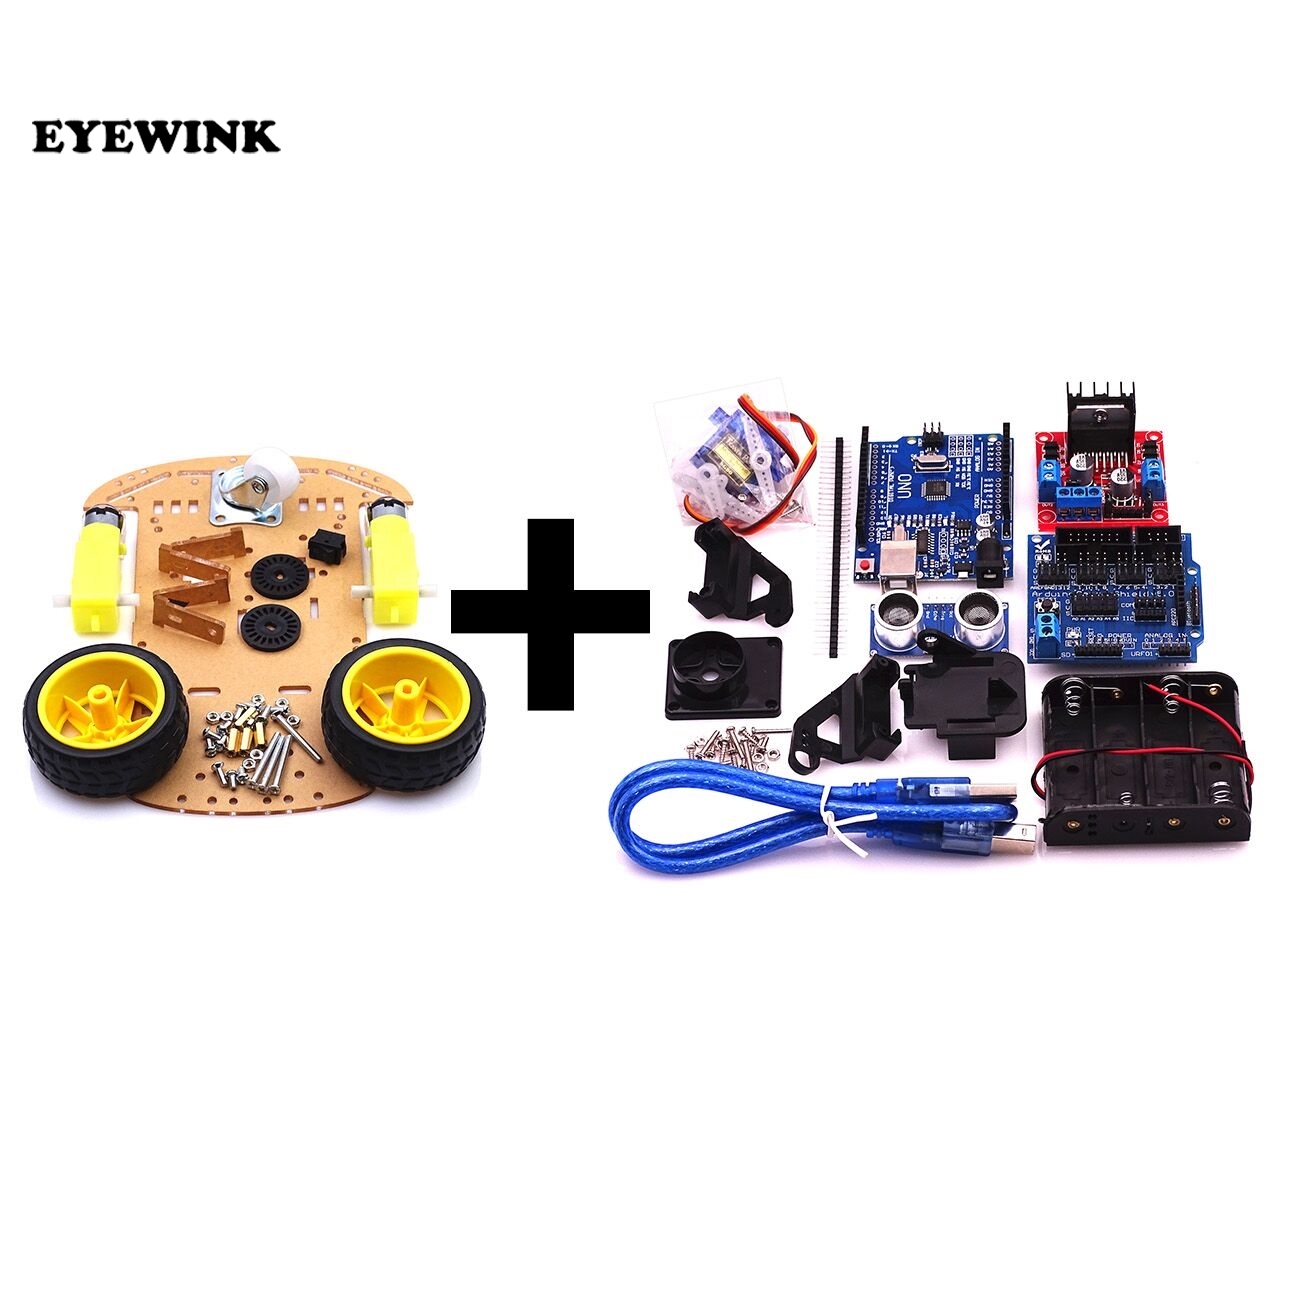 Integrated Circuits 2019 New Style Avoidance Tracking Motor Smart Robot Car Chassis Kit Speed Encoder Battery Box 2wd Ultrasonic Module For Arduino Kit 2019 New Fashion Style Online Electronic Components & Supplies